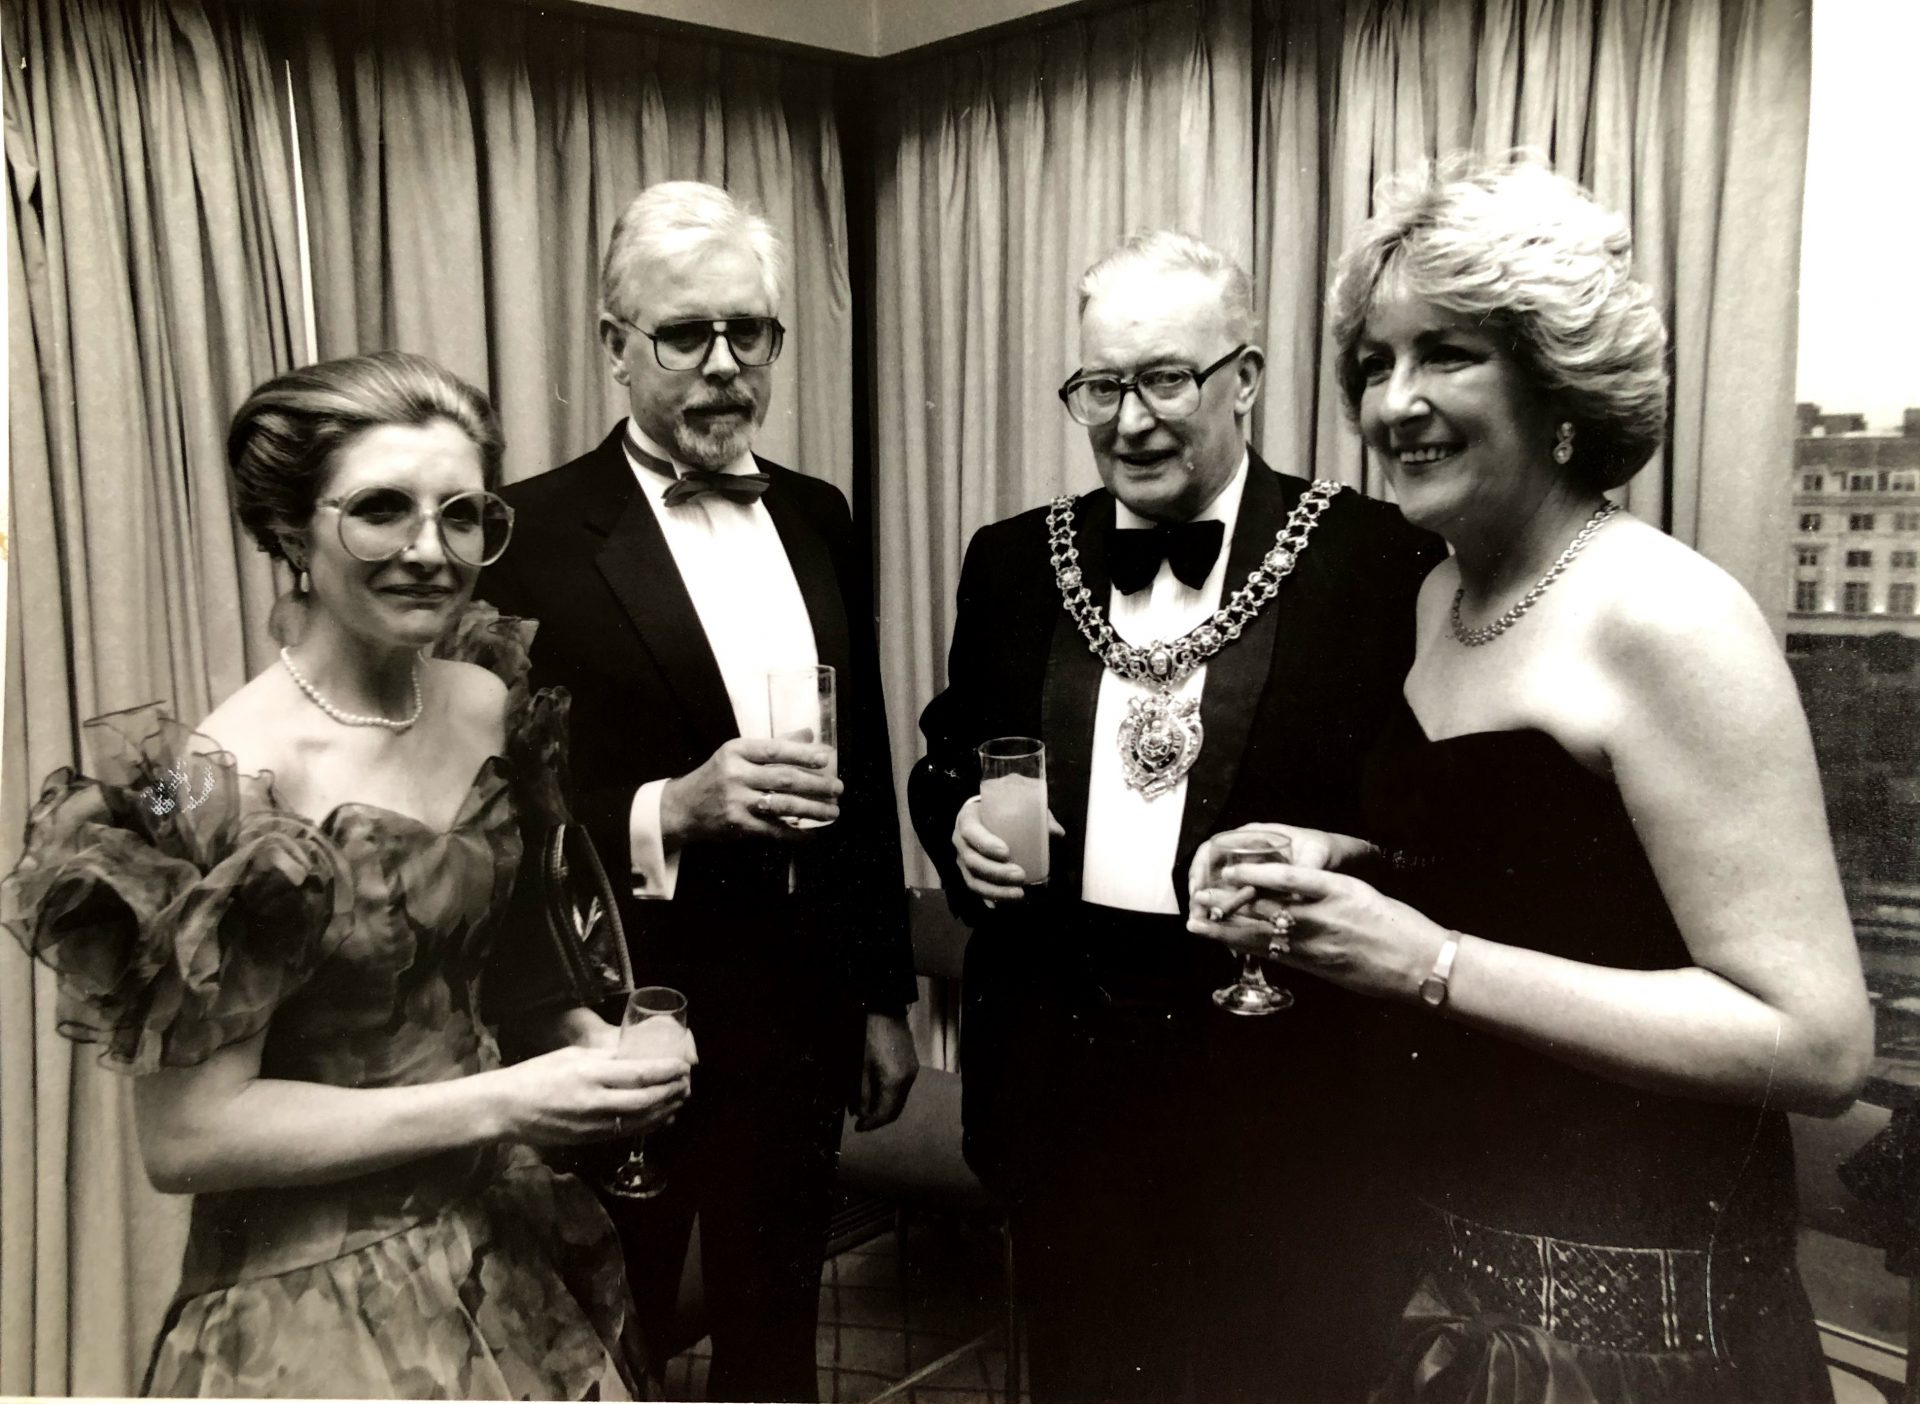 Black and White photo of people at a ball